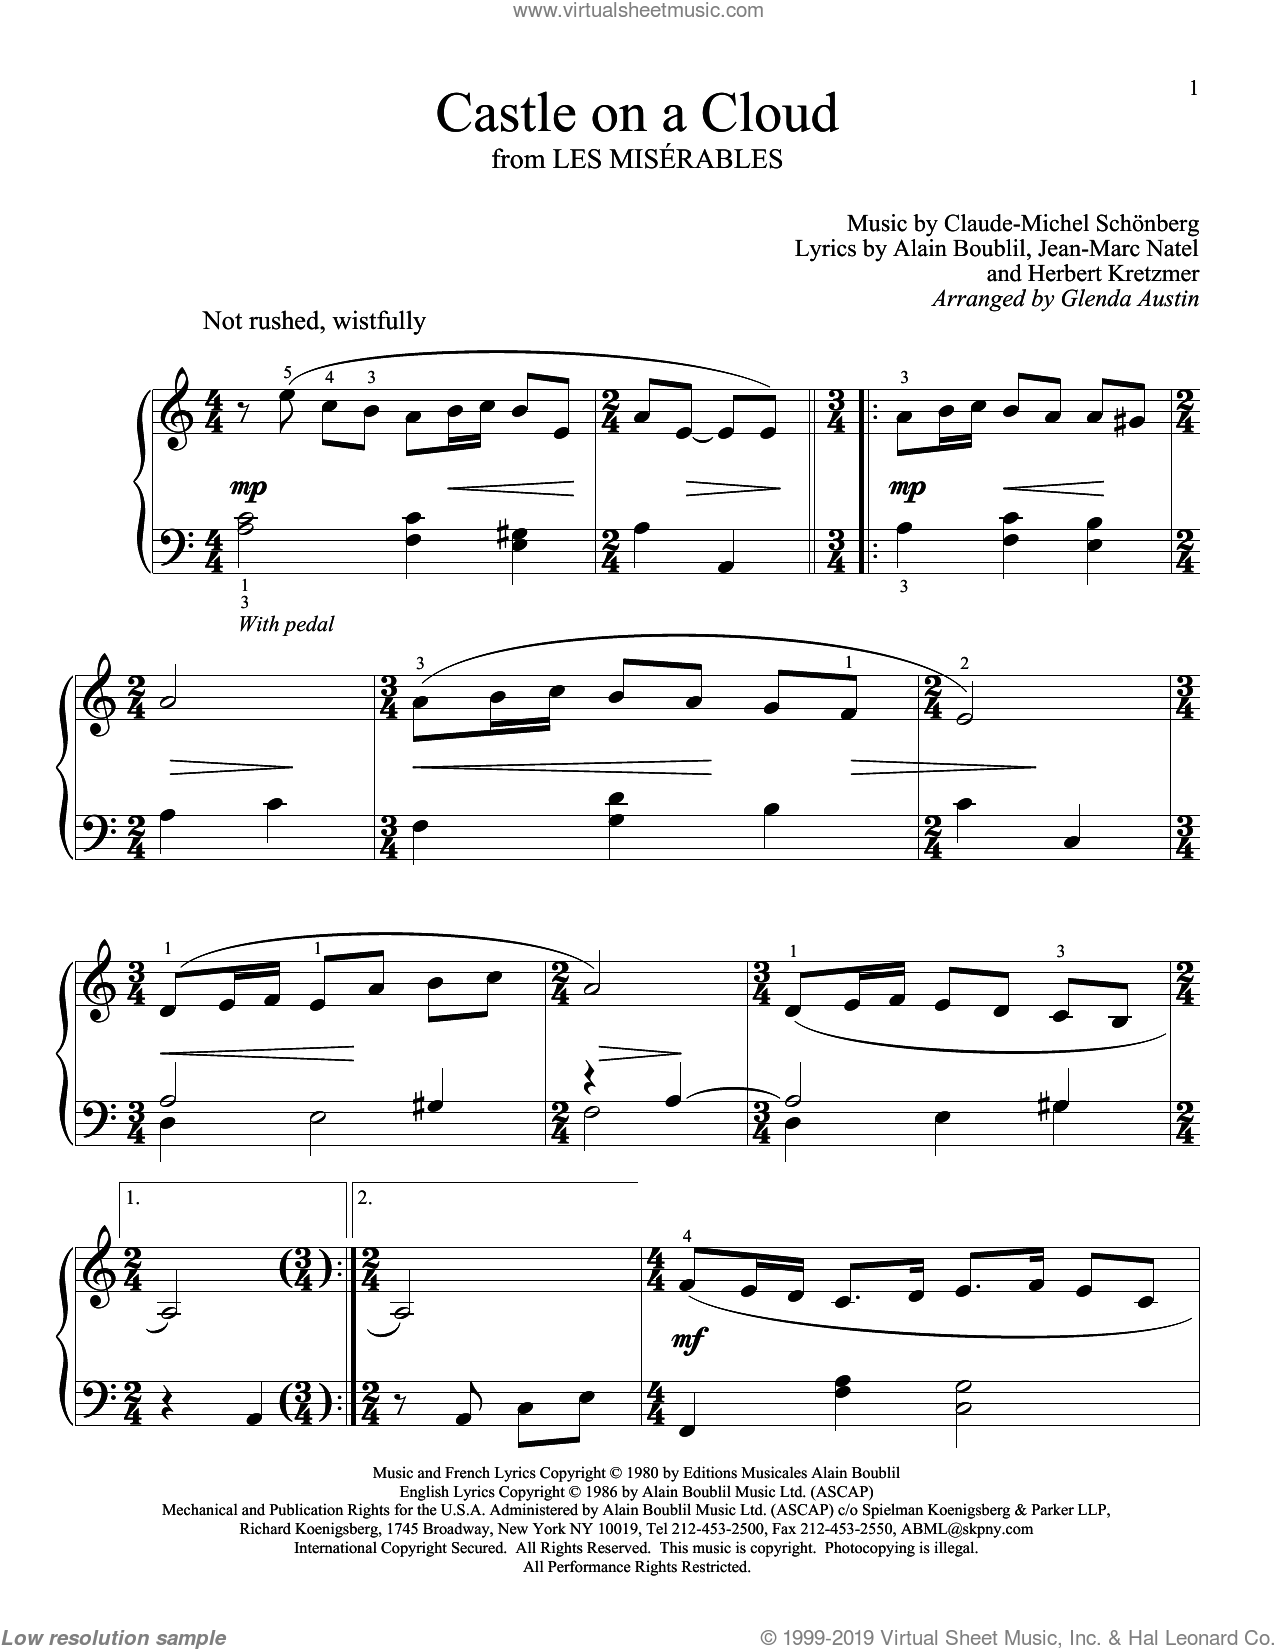 Castle On A Cloud sheet music for piano solo (elementary) by Alain Boublil, Glenda Austin, Les Miserables (Musical), Claude-Michel Schonberg, Herbert Kretzmer and Jean-Marc Natel, beginner piano (elementary)